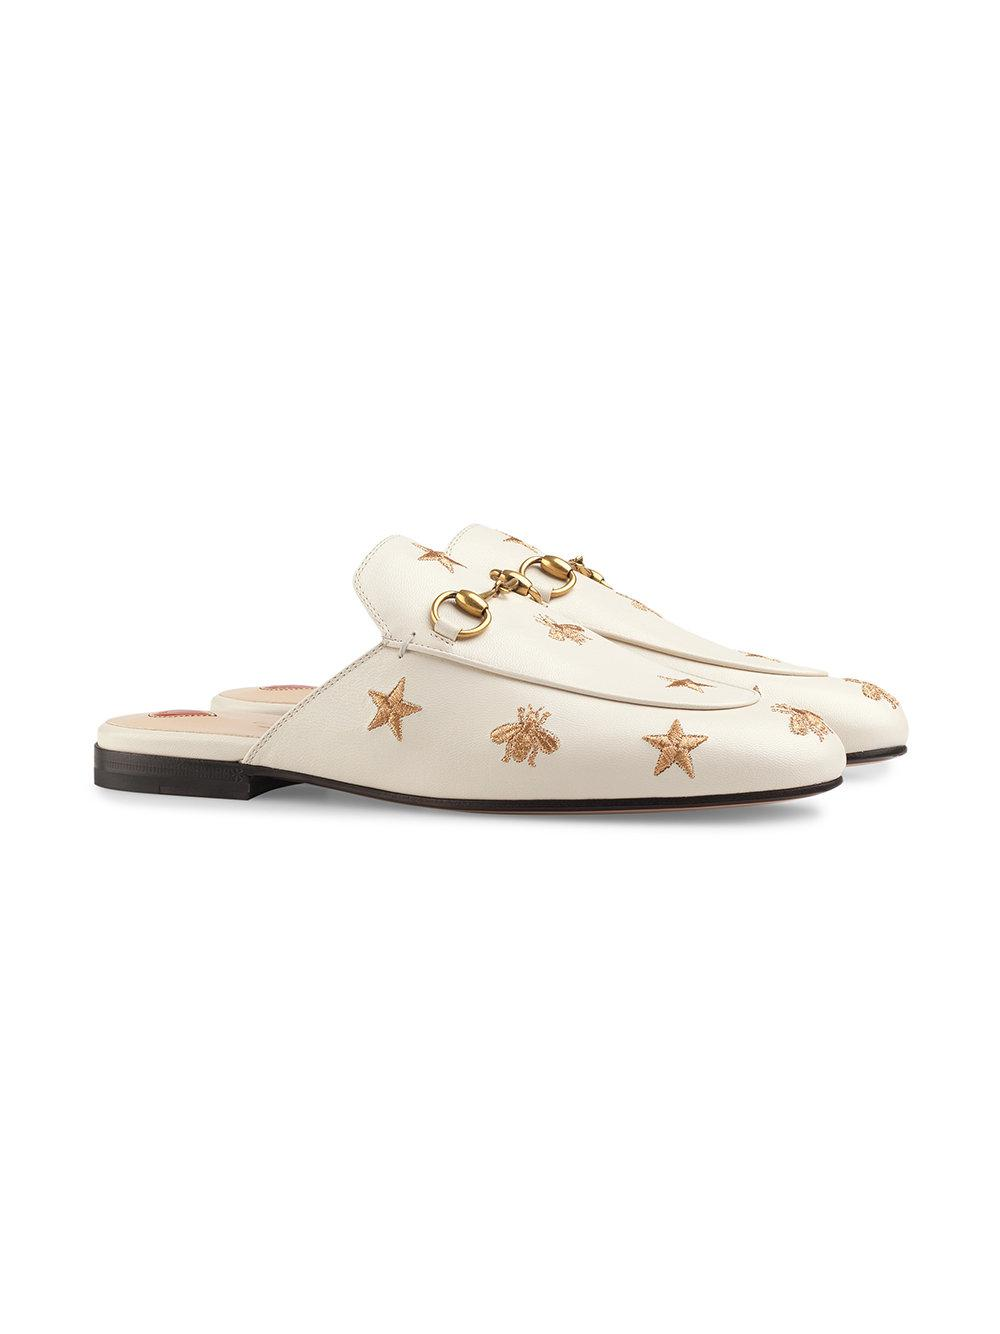 fa5a048bbcd Lyst - Gucci Princetown Horsebit-detailed Embroidered Leather Slippers in  White